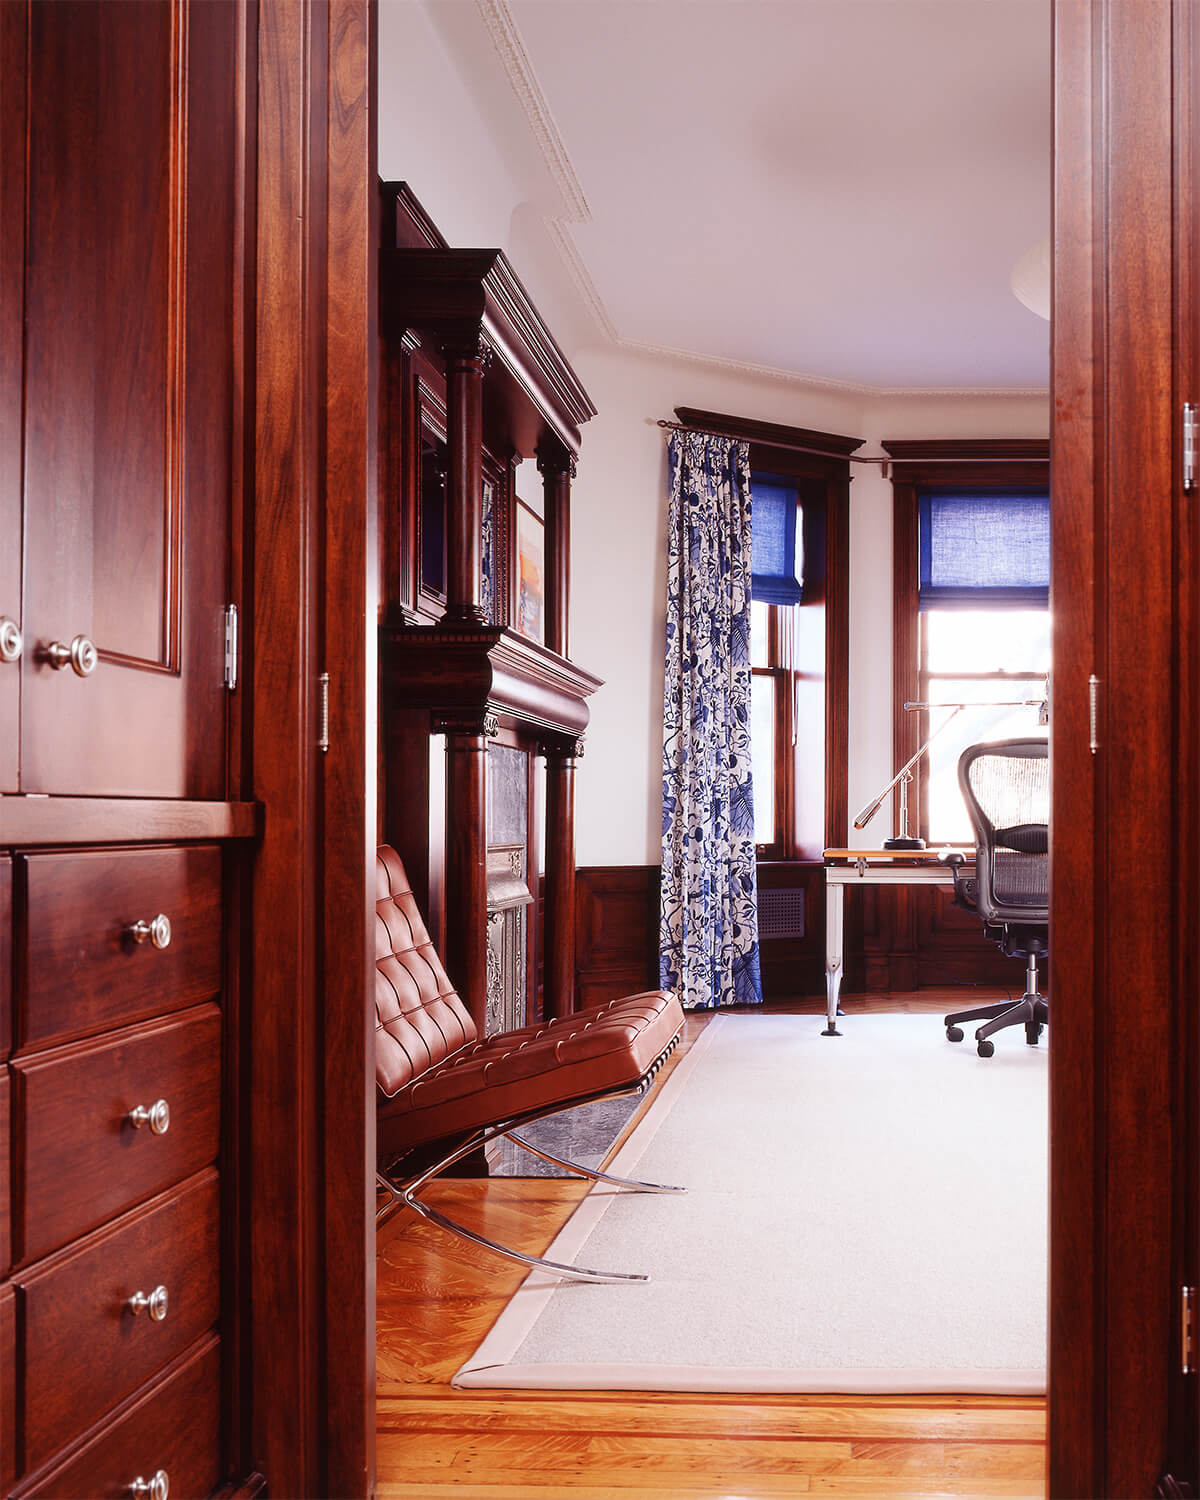 Replicated mahogany and oak millwork in grand limestone row house.